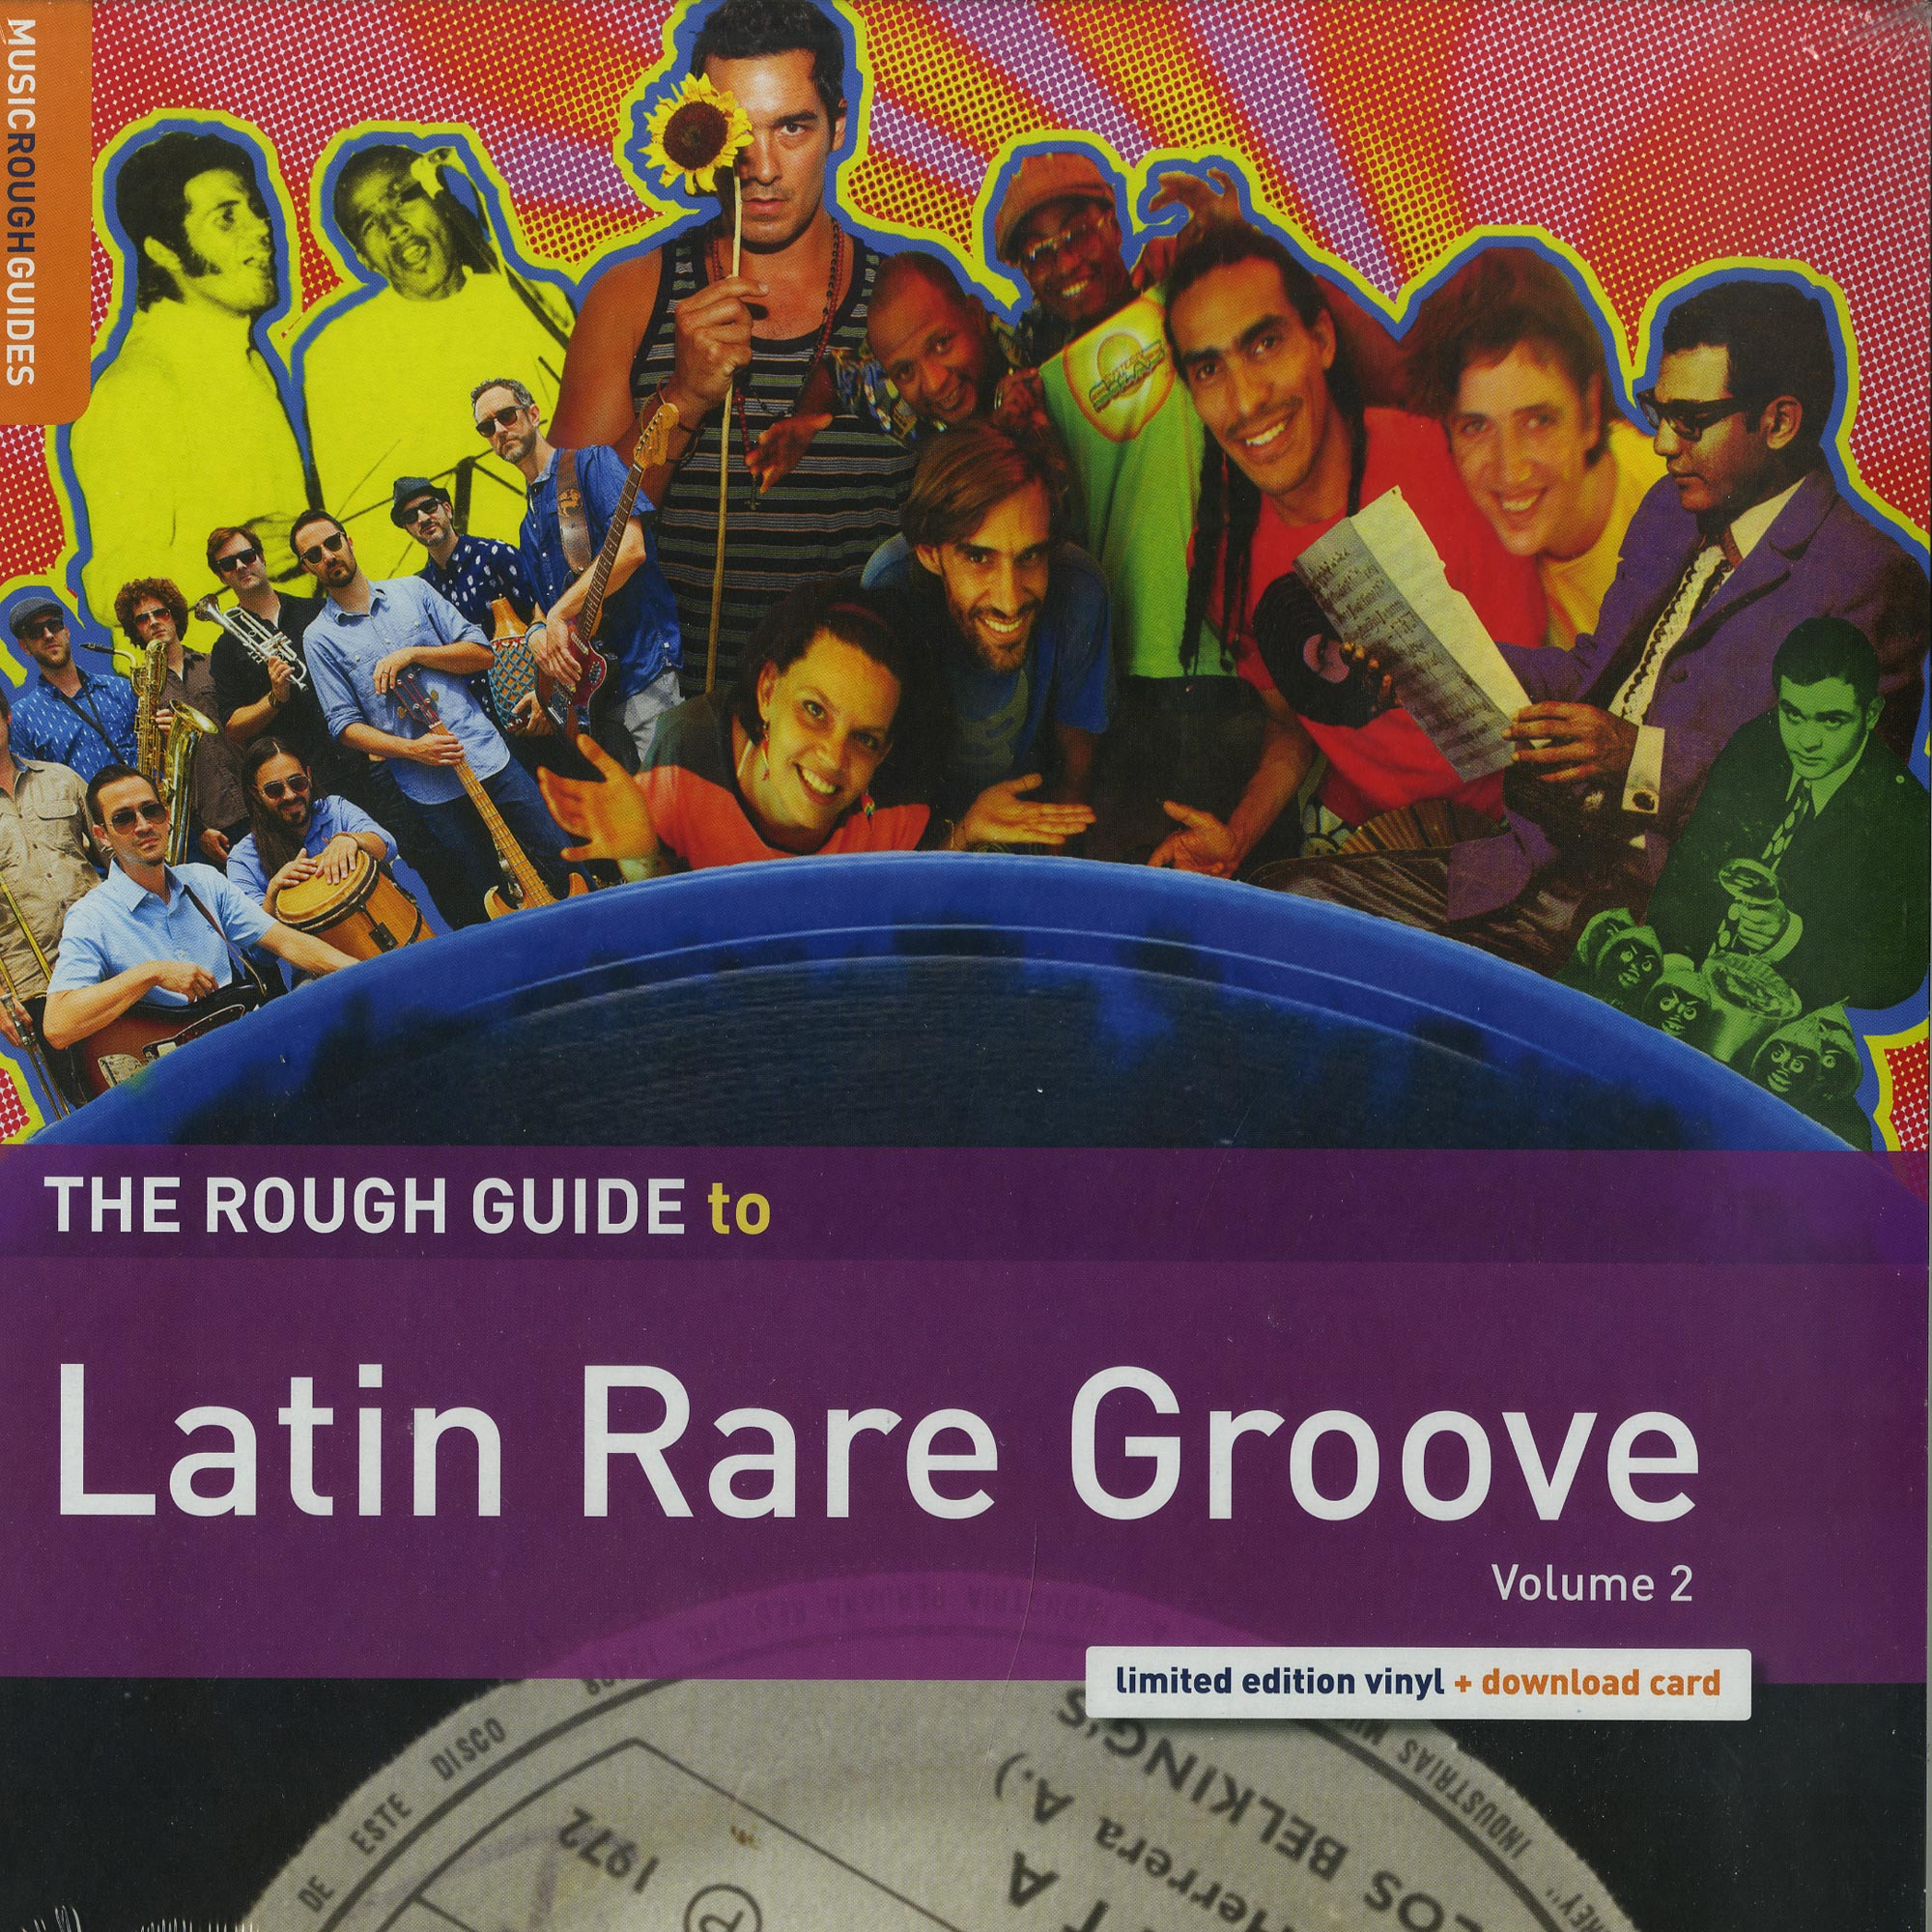 Various Artists - THE ROUGH GUIDE TO LATIN RARE GROOVE VOL. 2